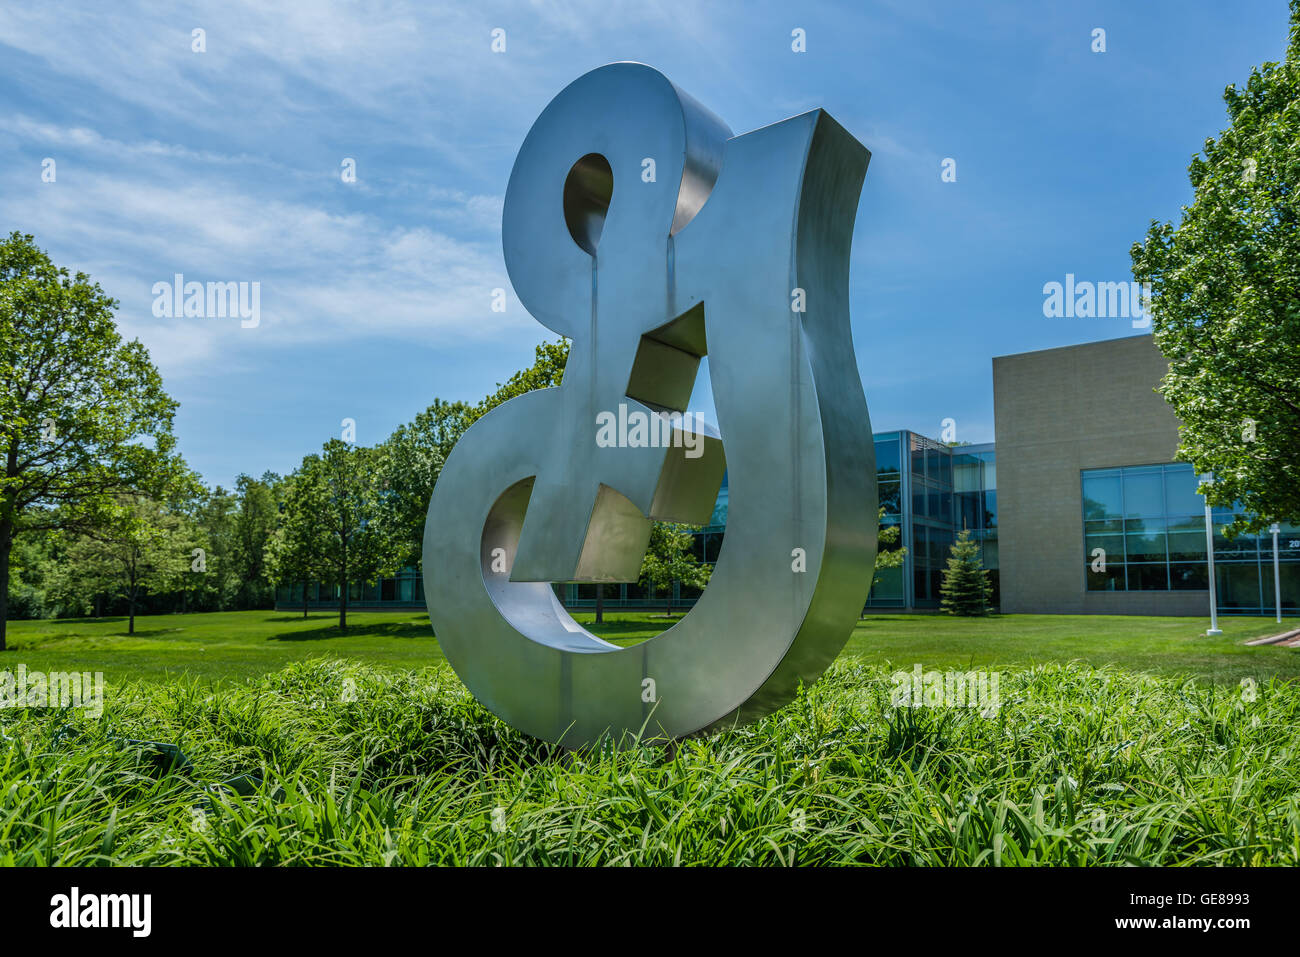 General Mills Corporate Headquarters Sign - Stock Image